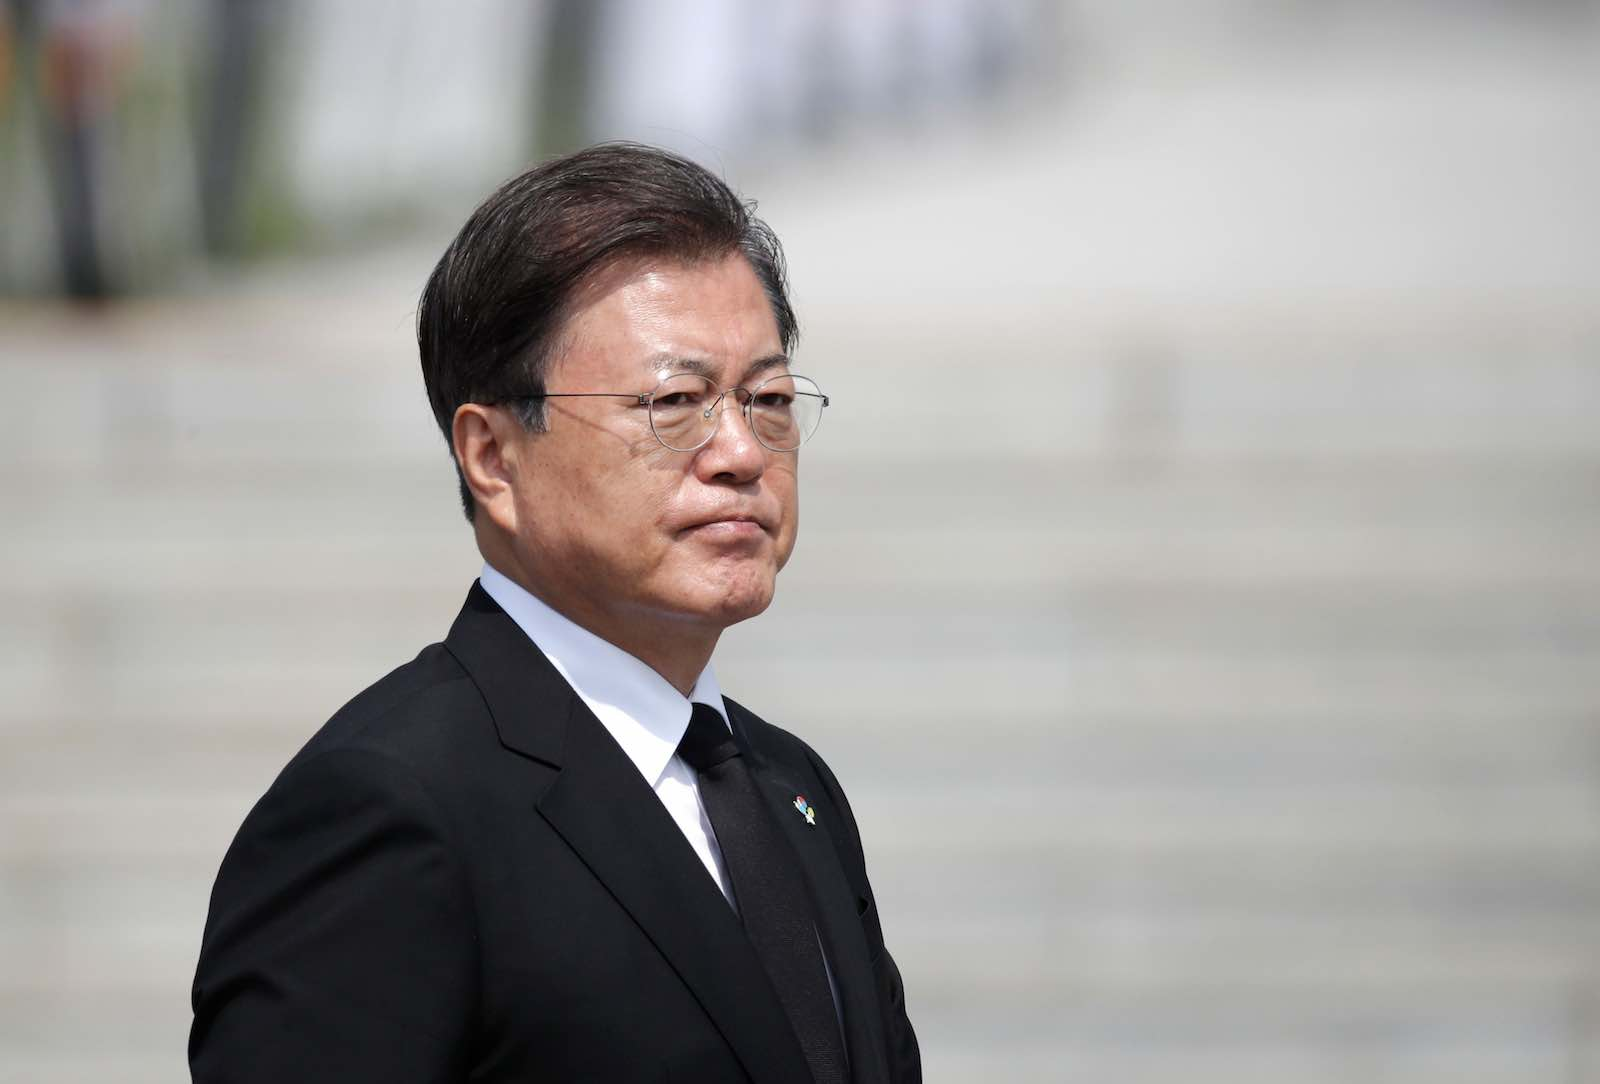 South Korean President Moon Jae-in attends a Memorial Day ceremony at the national cemetery in Daejeon on 6 June 2020 (Lee Jin-man/AFP/Getty Images)